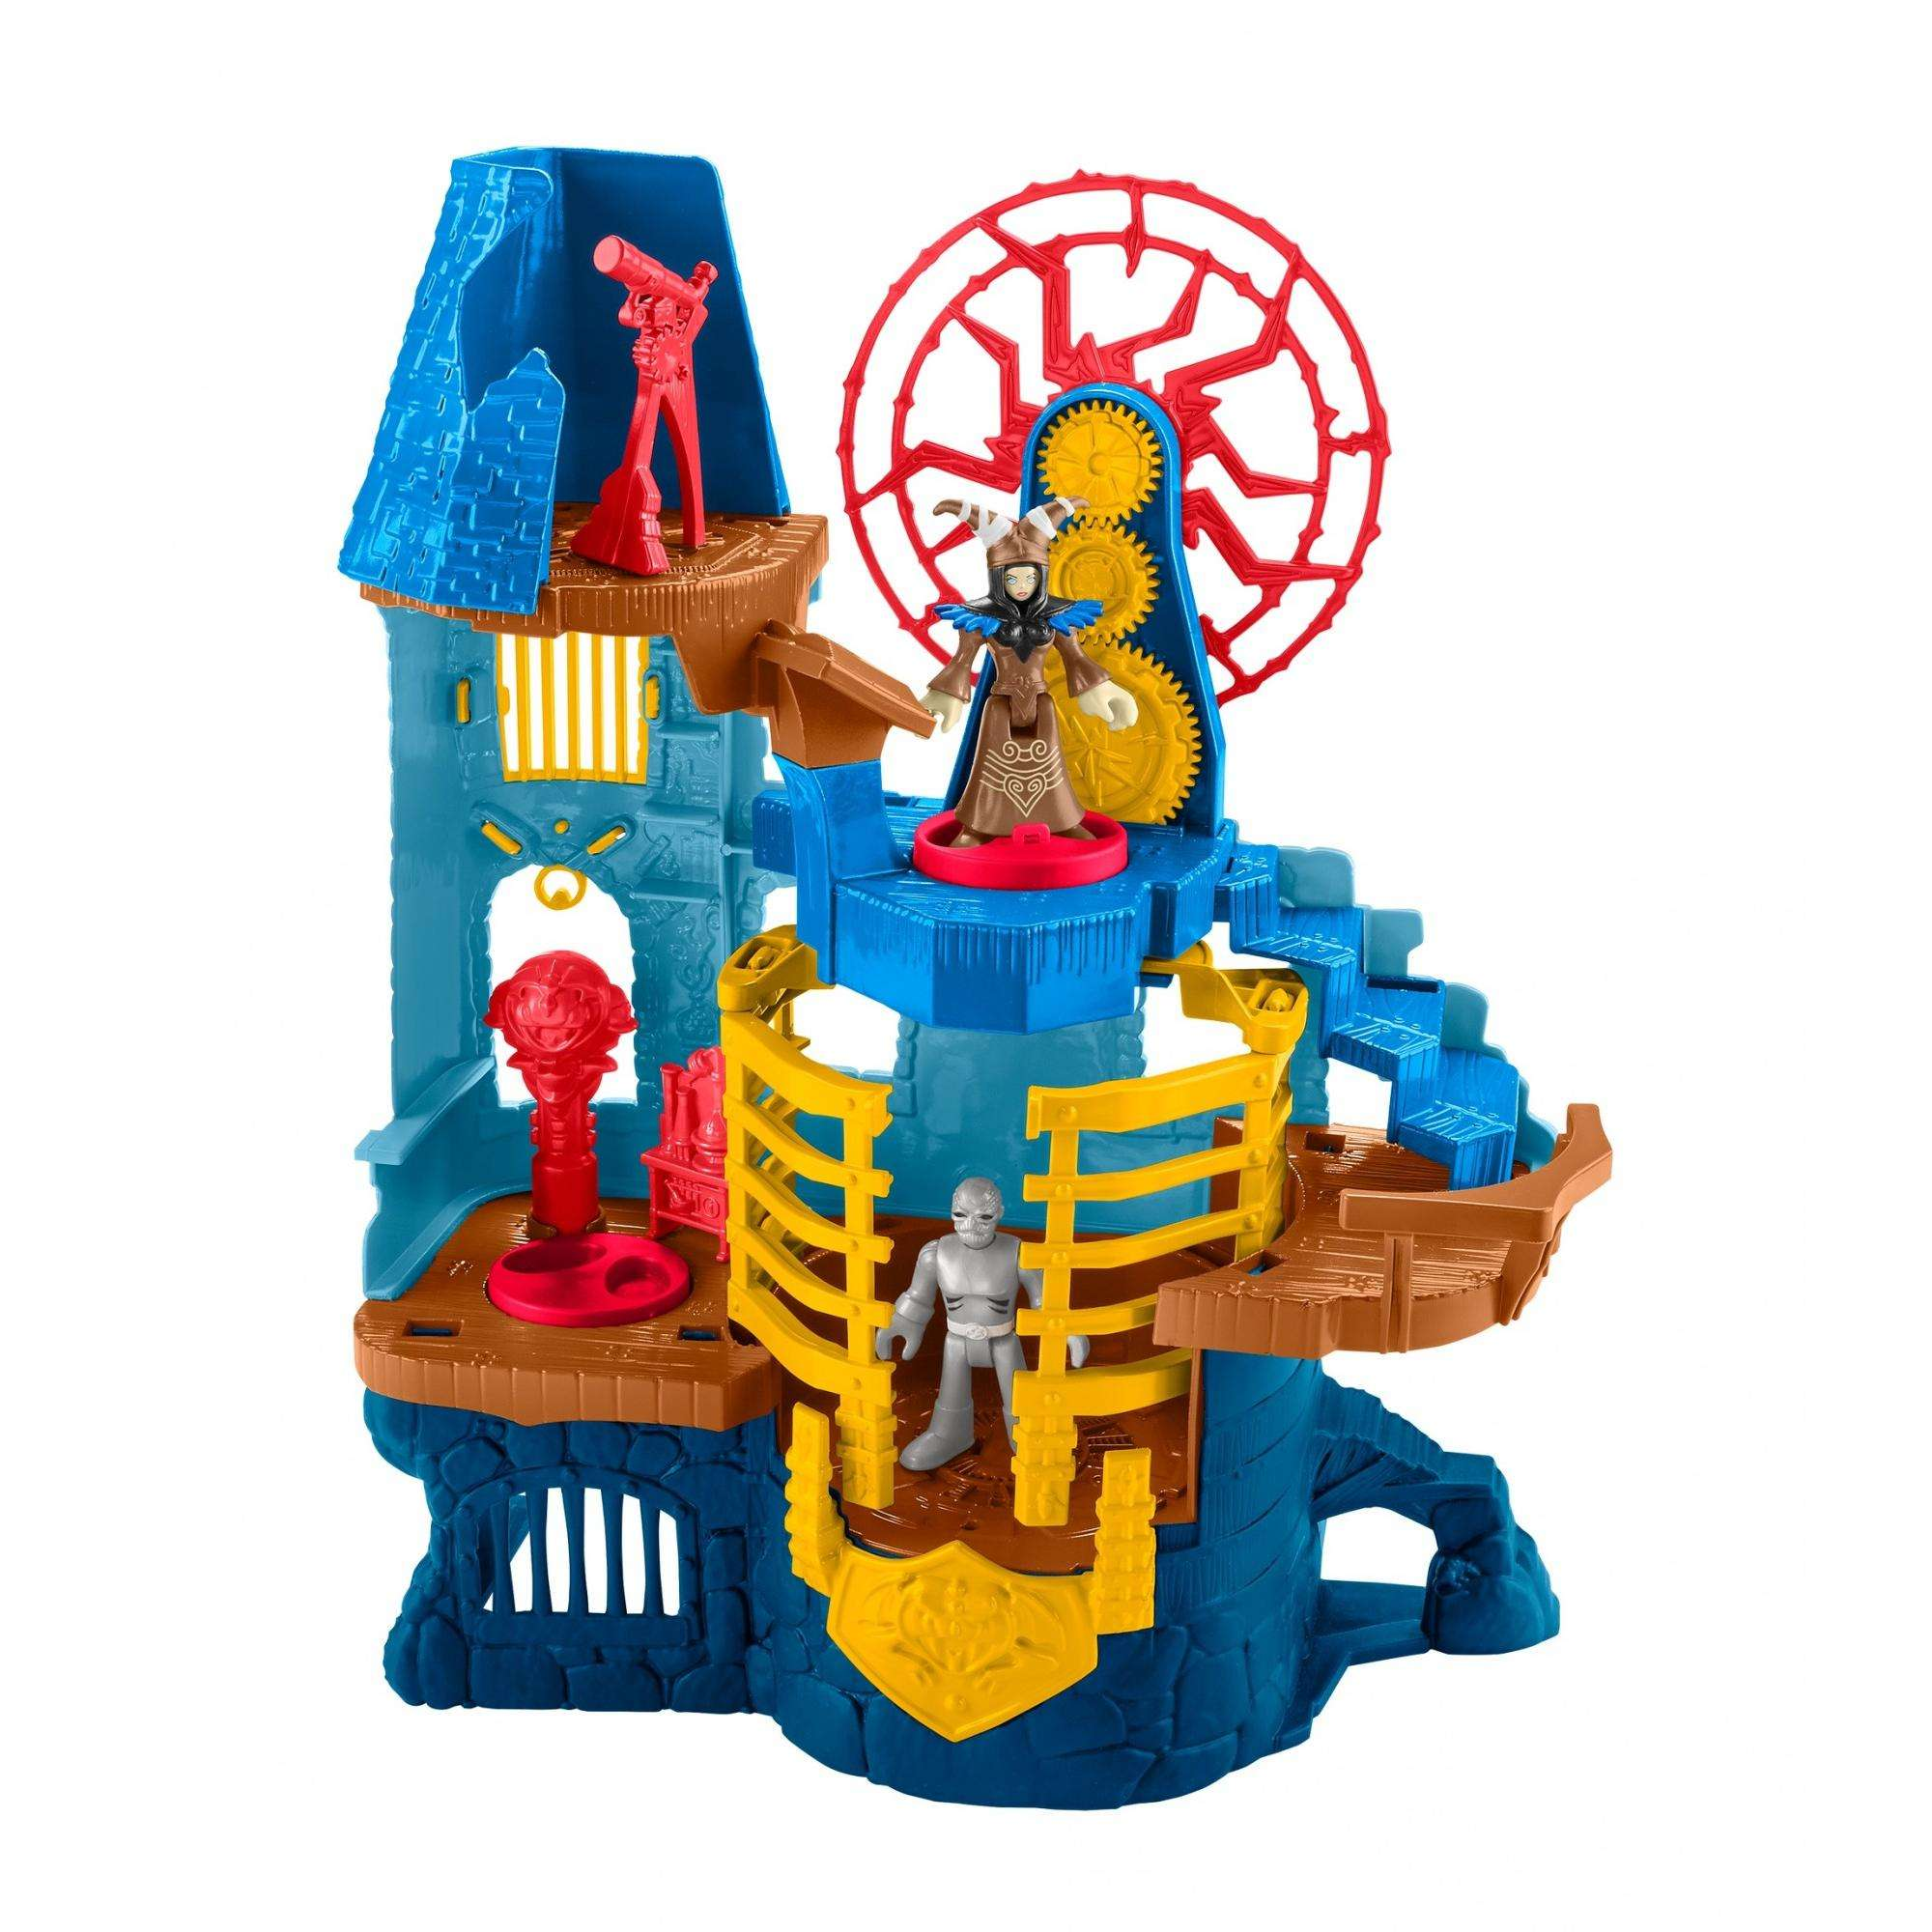 IMaginext Power Rangers Rita Repulsa & Moon Base by FISHER-PRICE BRANDS A DIVISION OF MATTEL DIRECT IMPORT INC